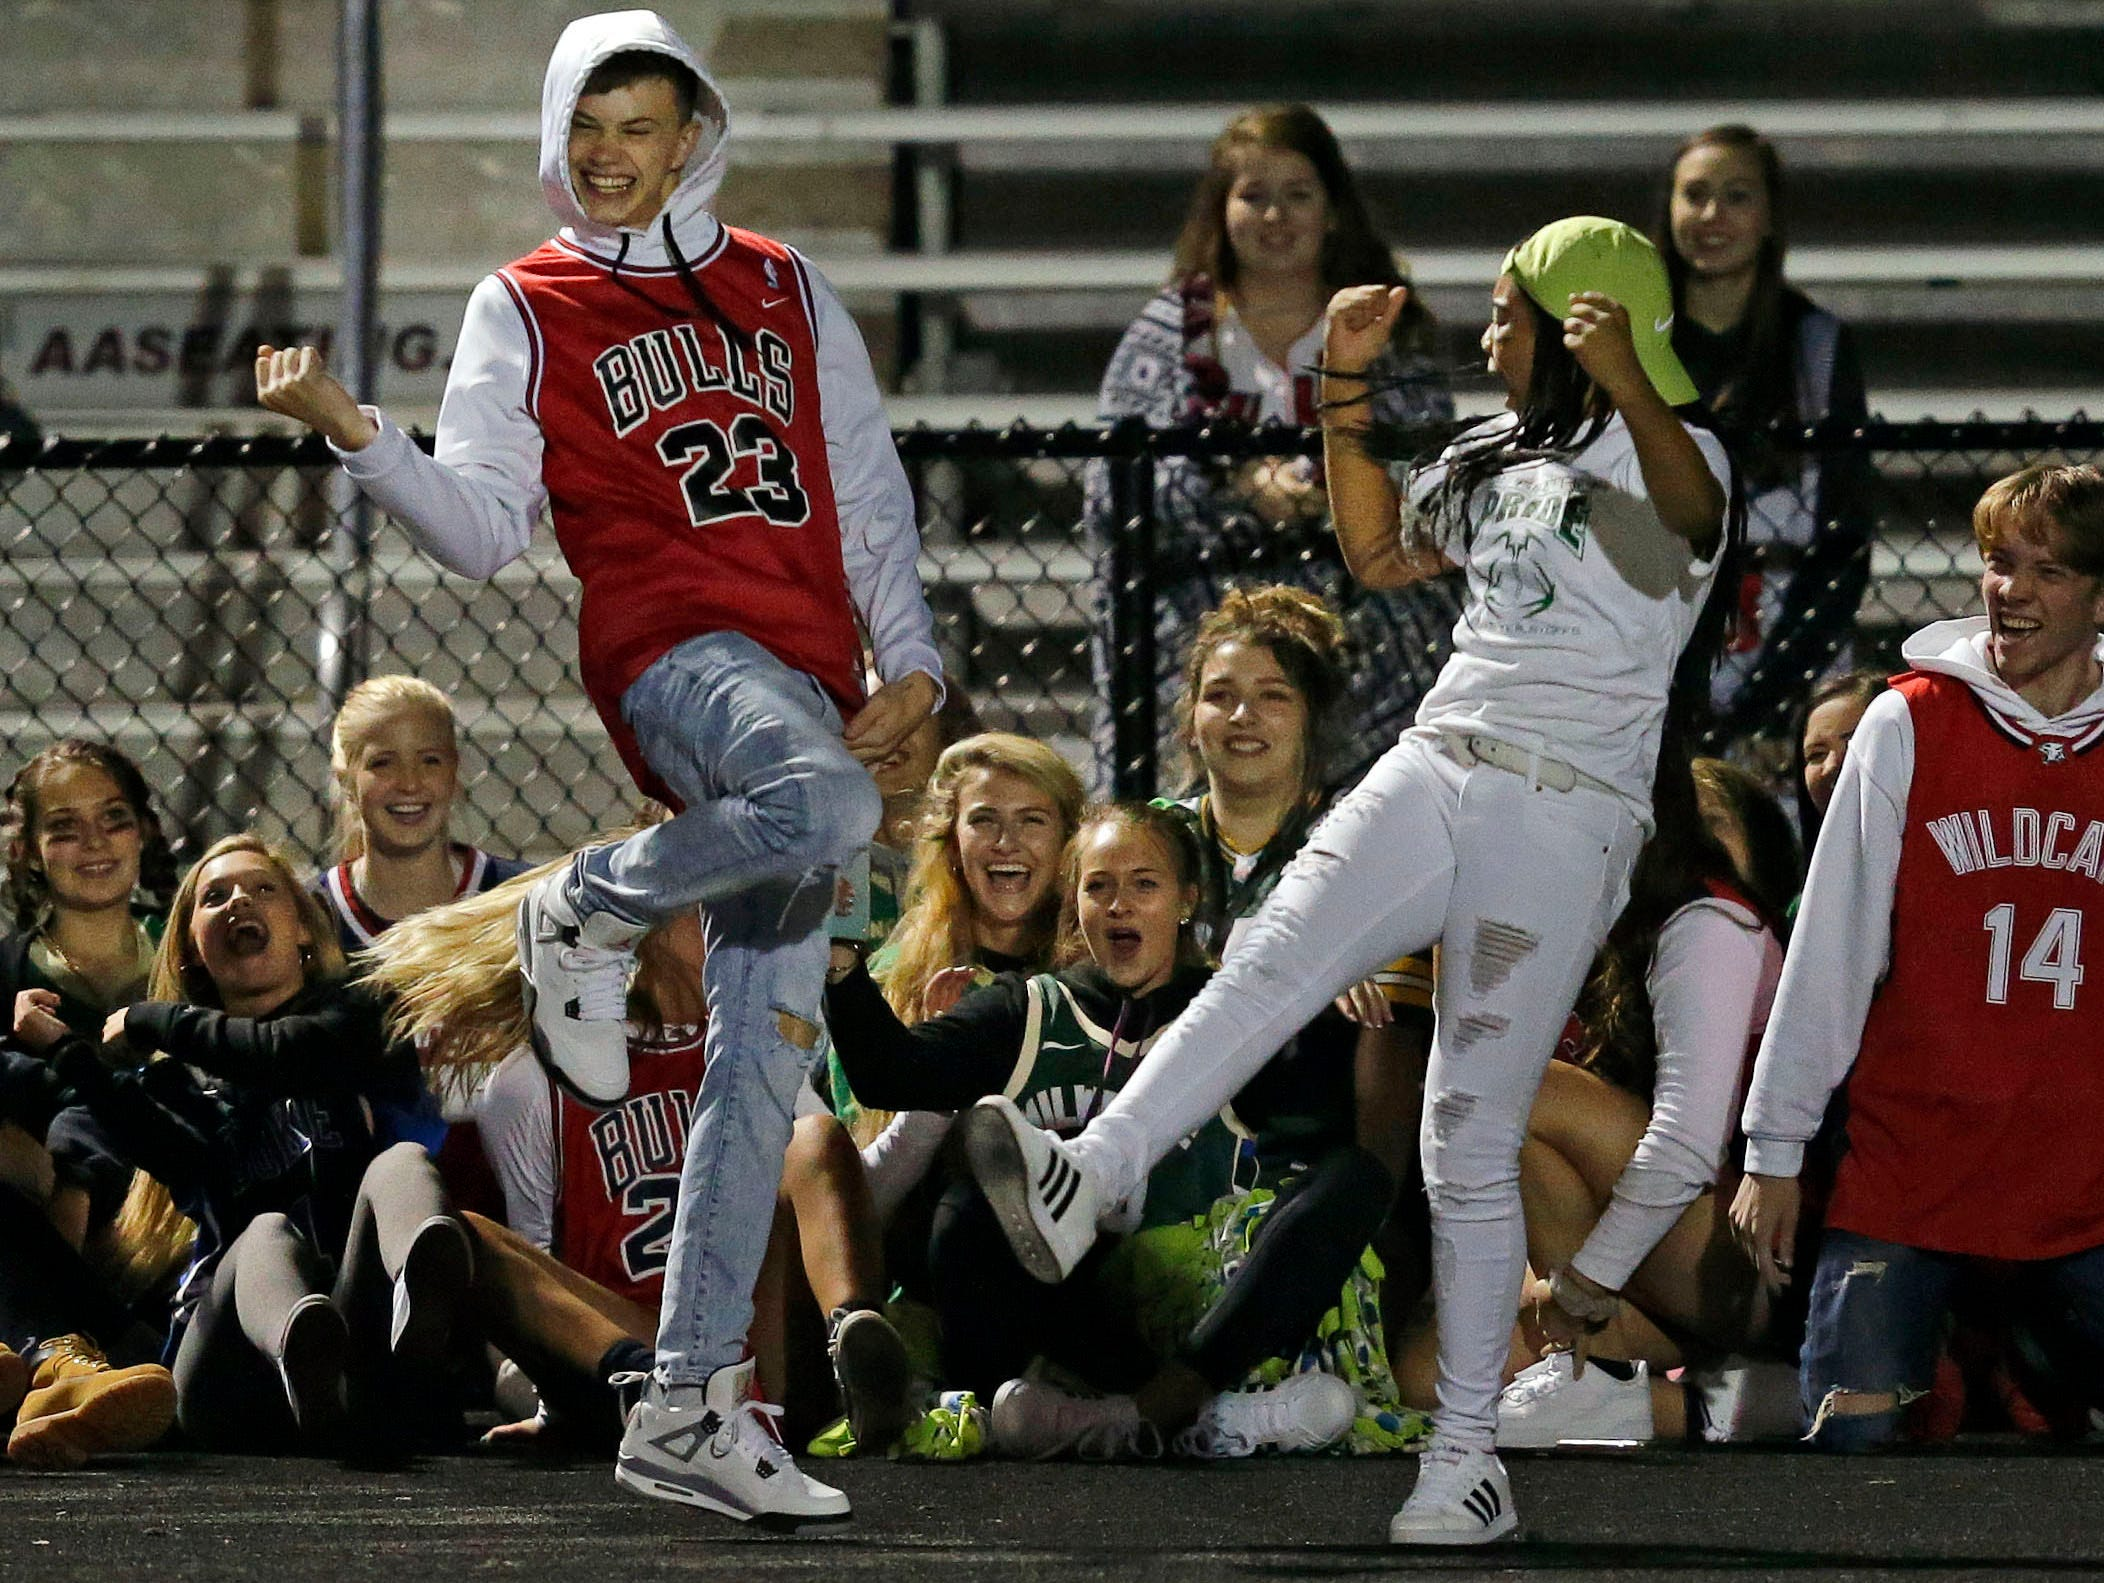 Student get in dance time at the half as Oshkosh North takes on Appleton West in a Valley Football Association game Friday, September 7, 2018, at Appleton West High School in Appleton, Wis.